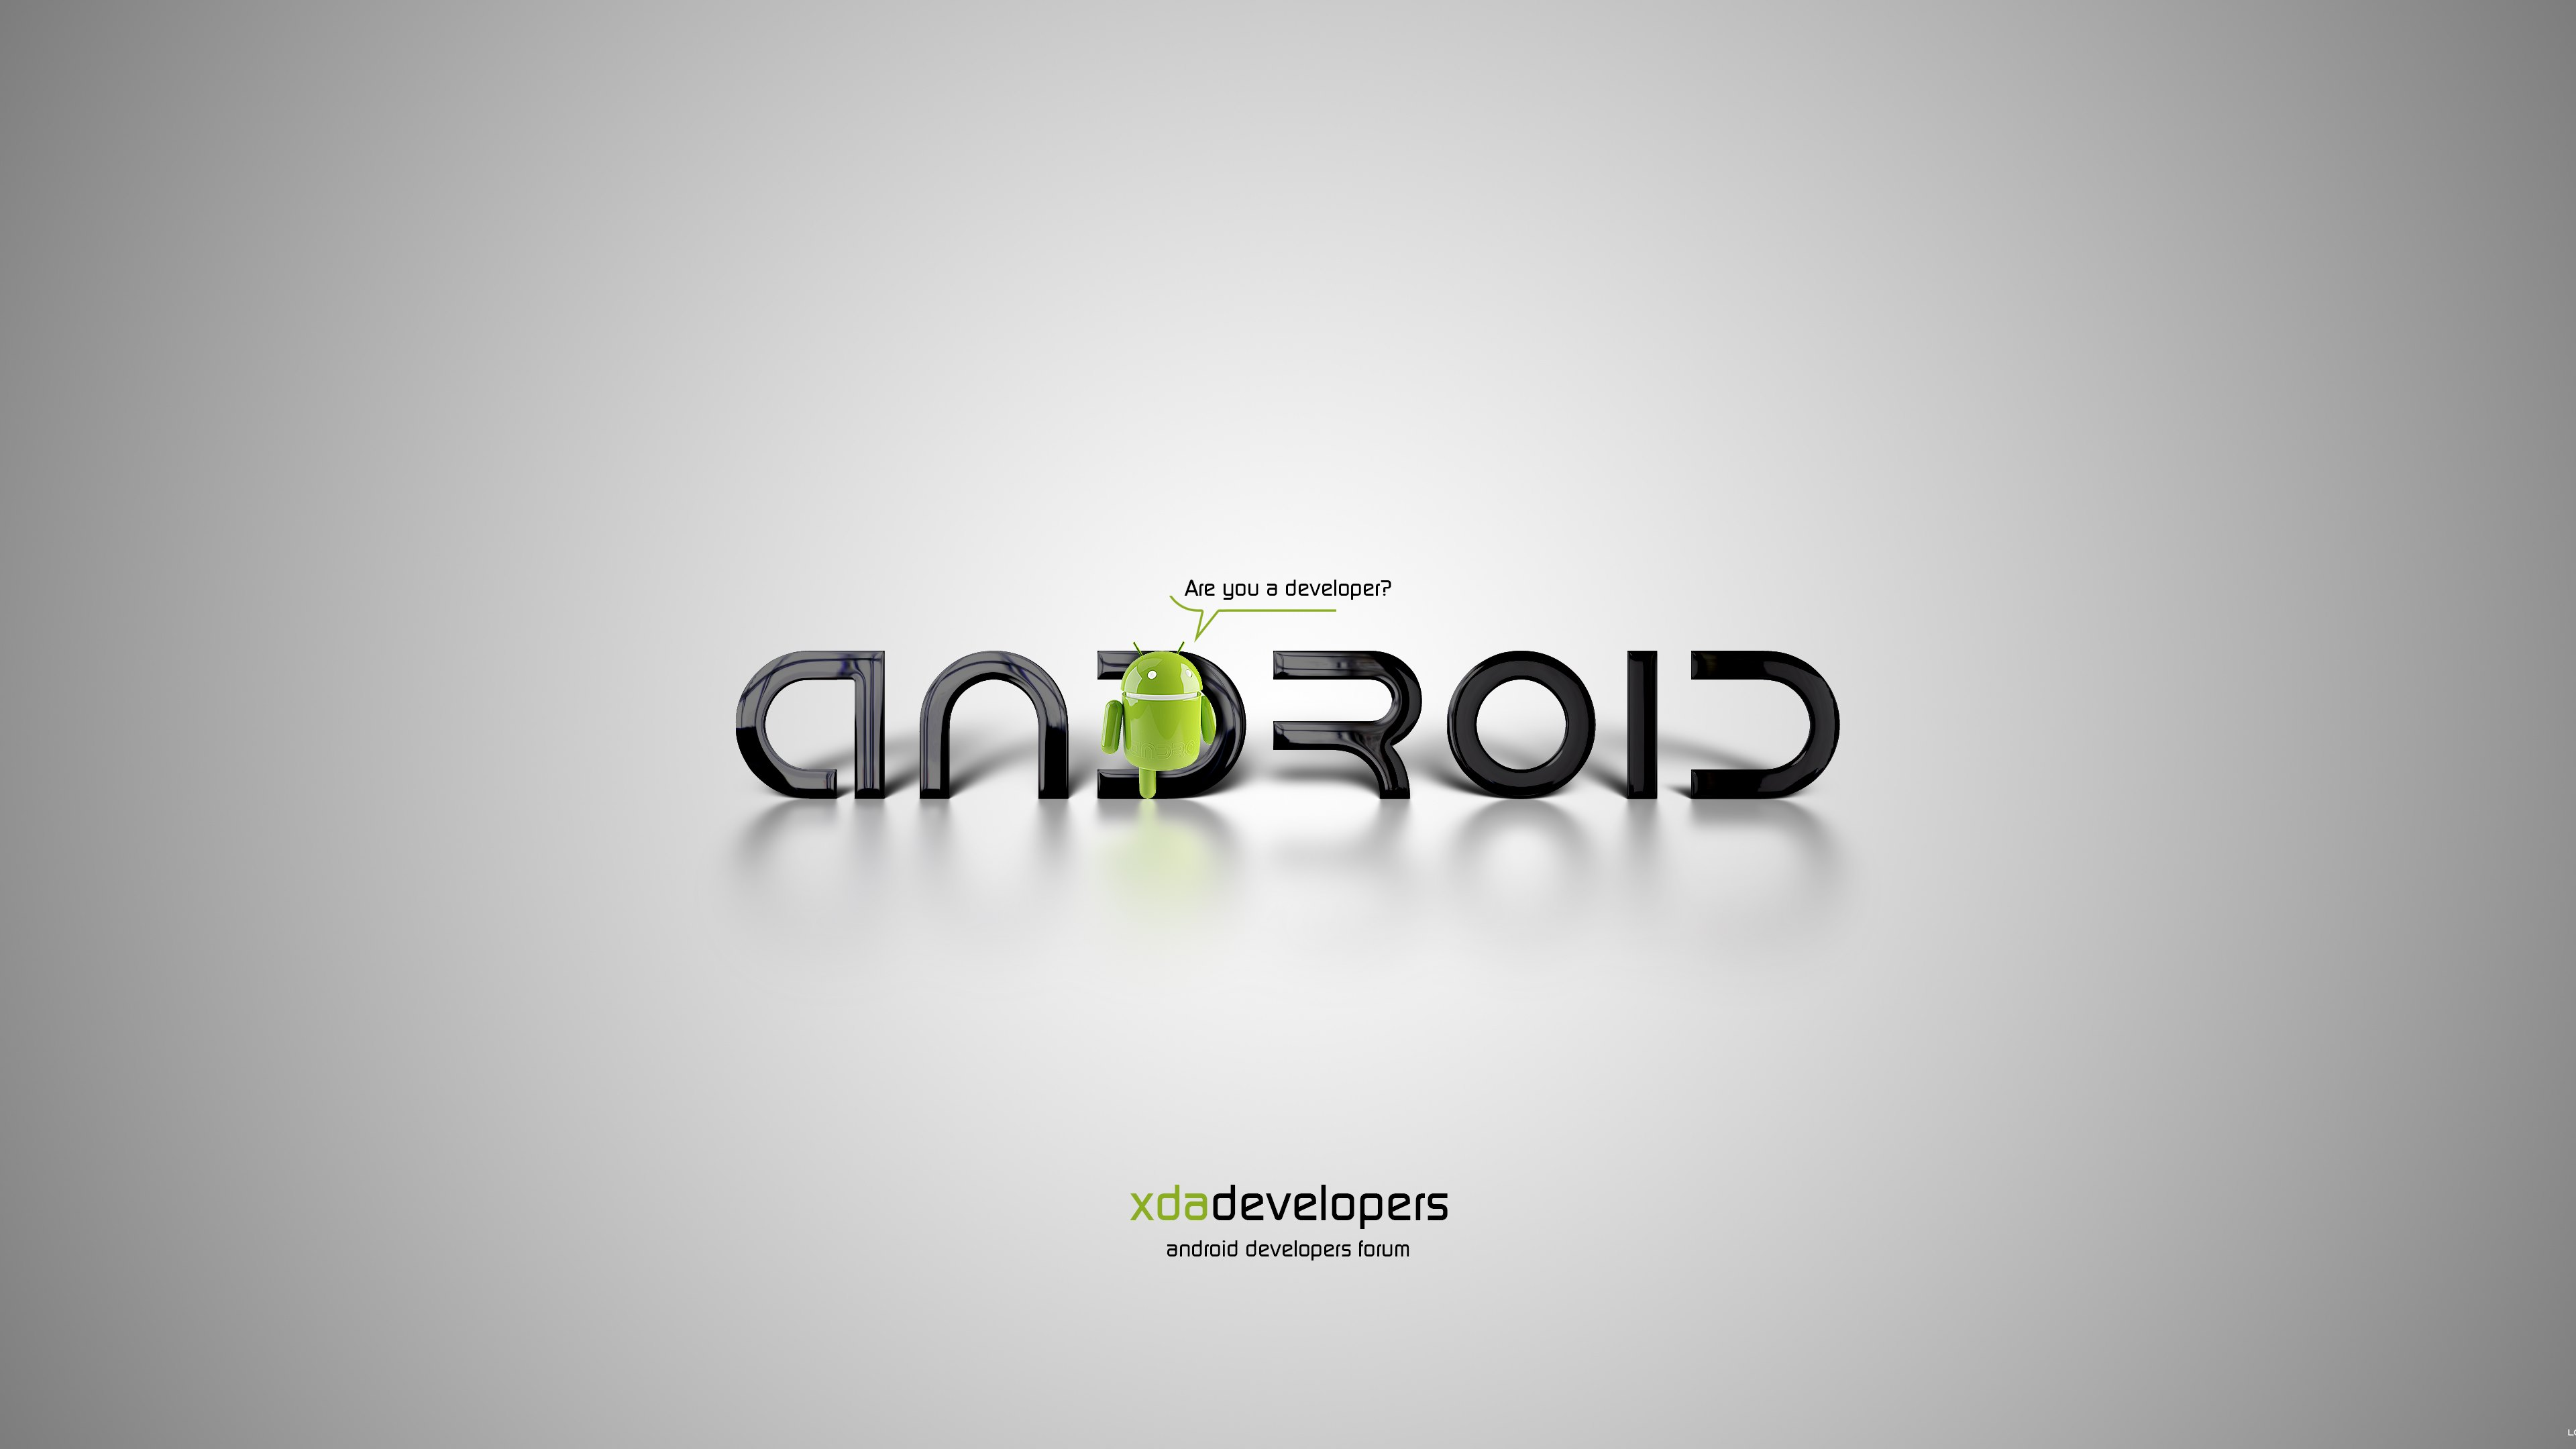 4k hd wallpaper xda android developers forum